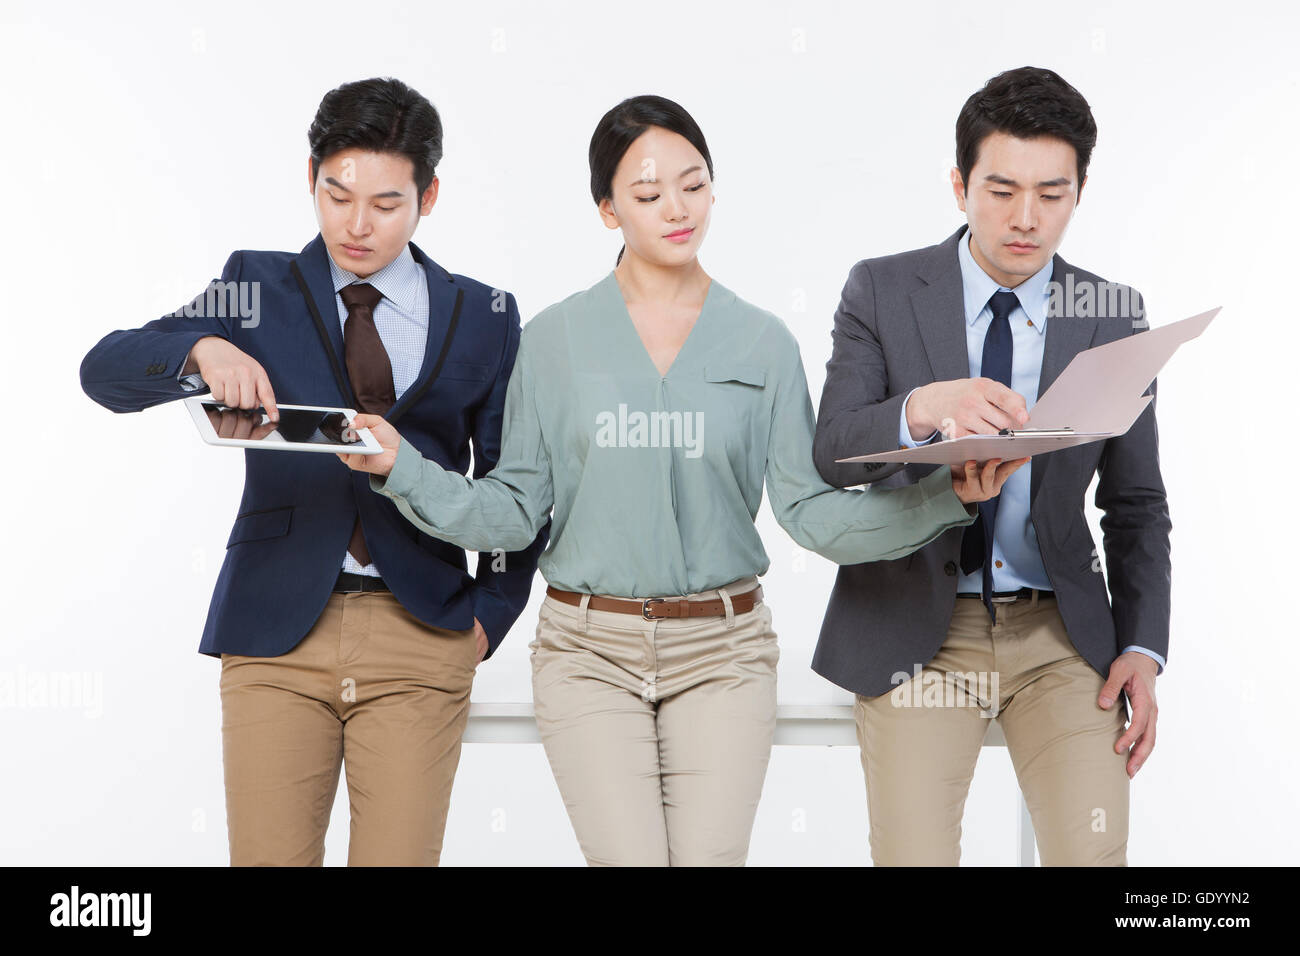 Smiling business woman holds out a tablet and file to her coworkers and they touch them - Stock Image